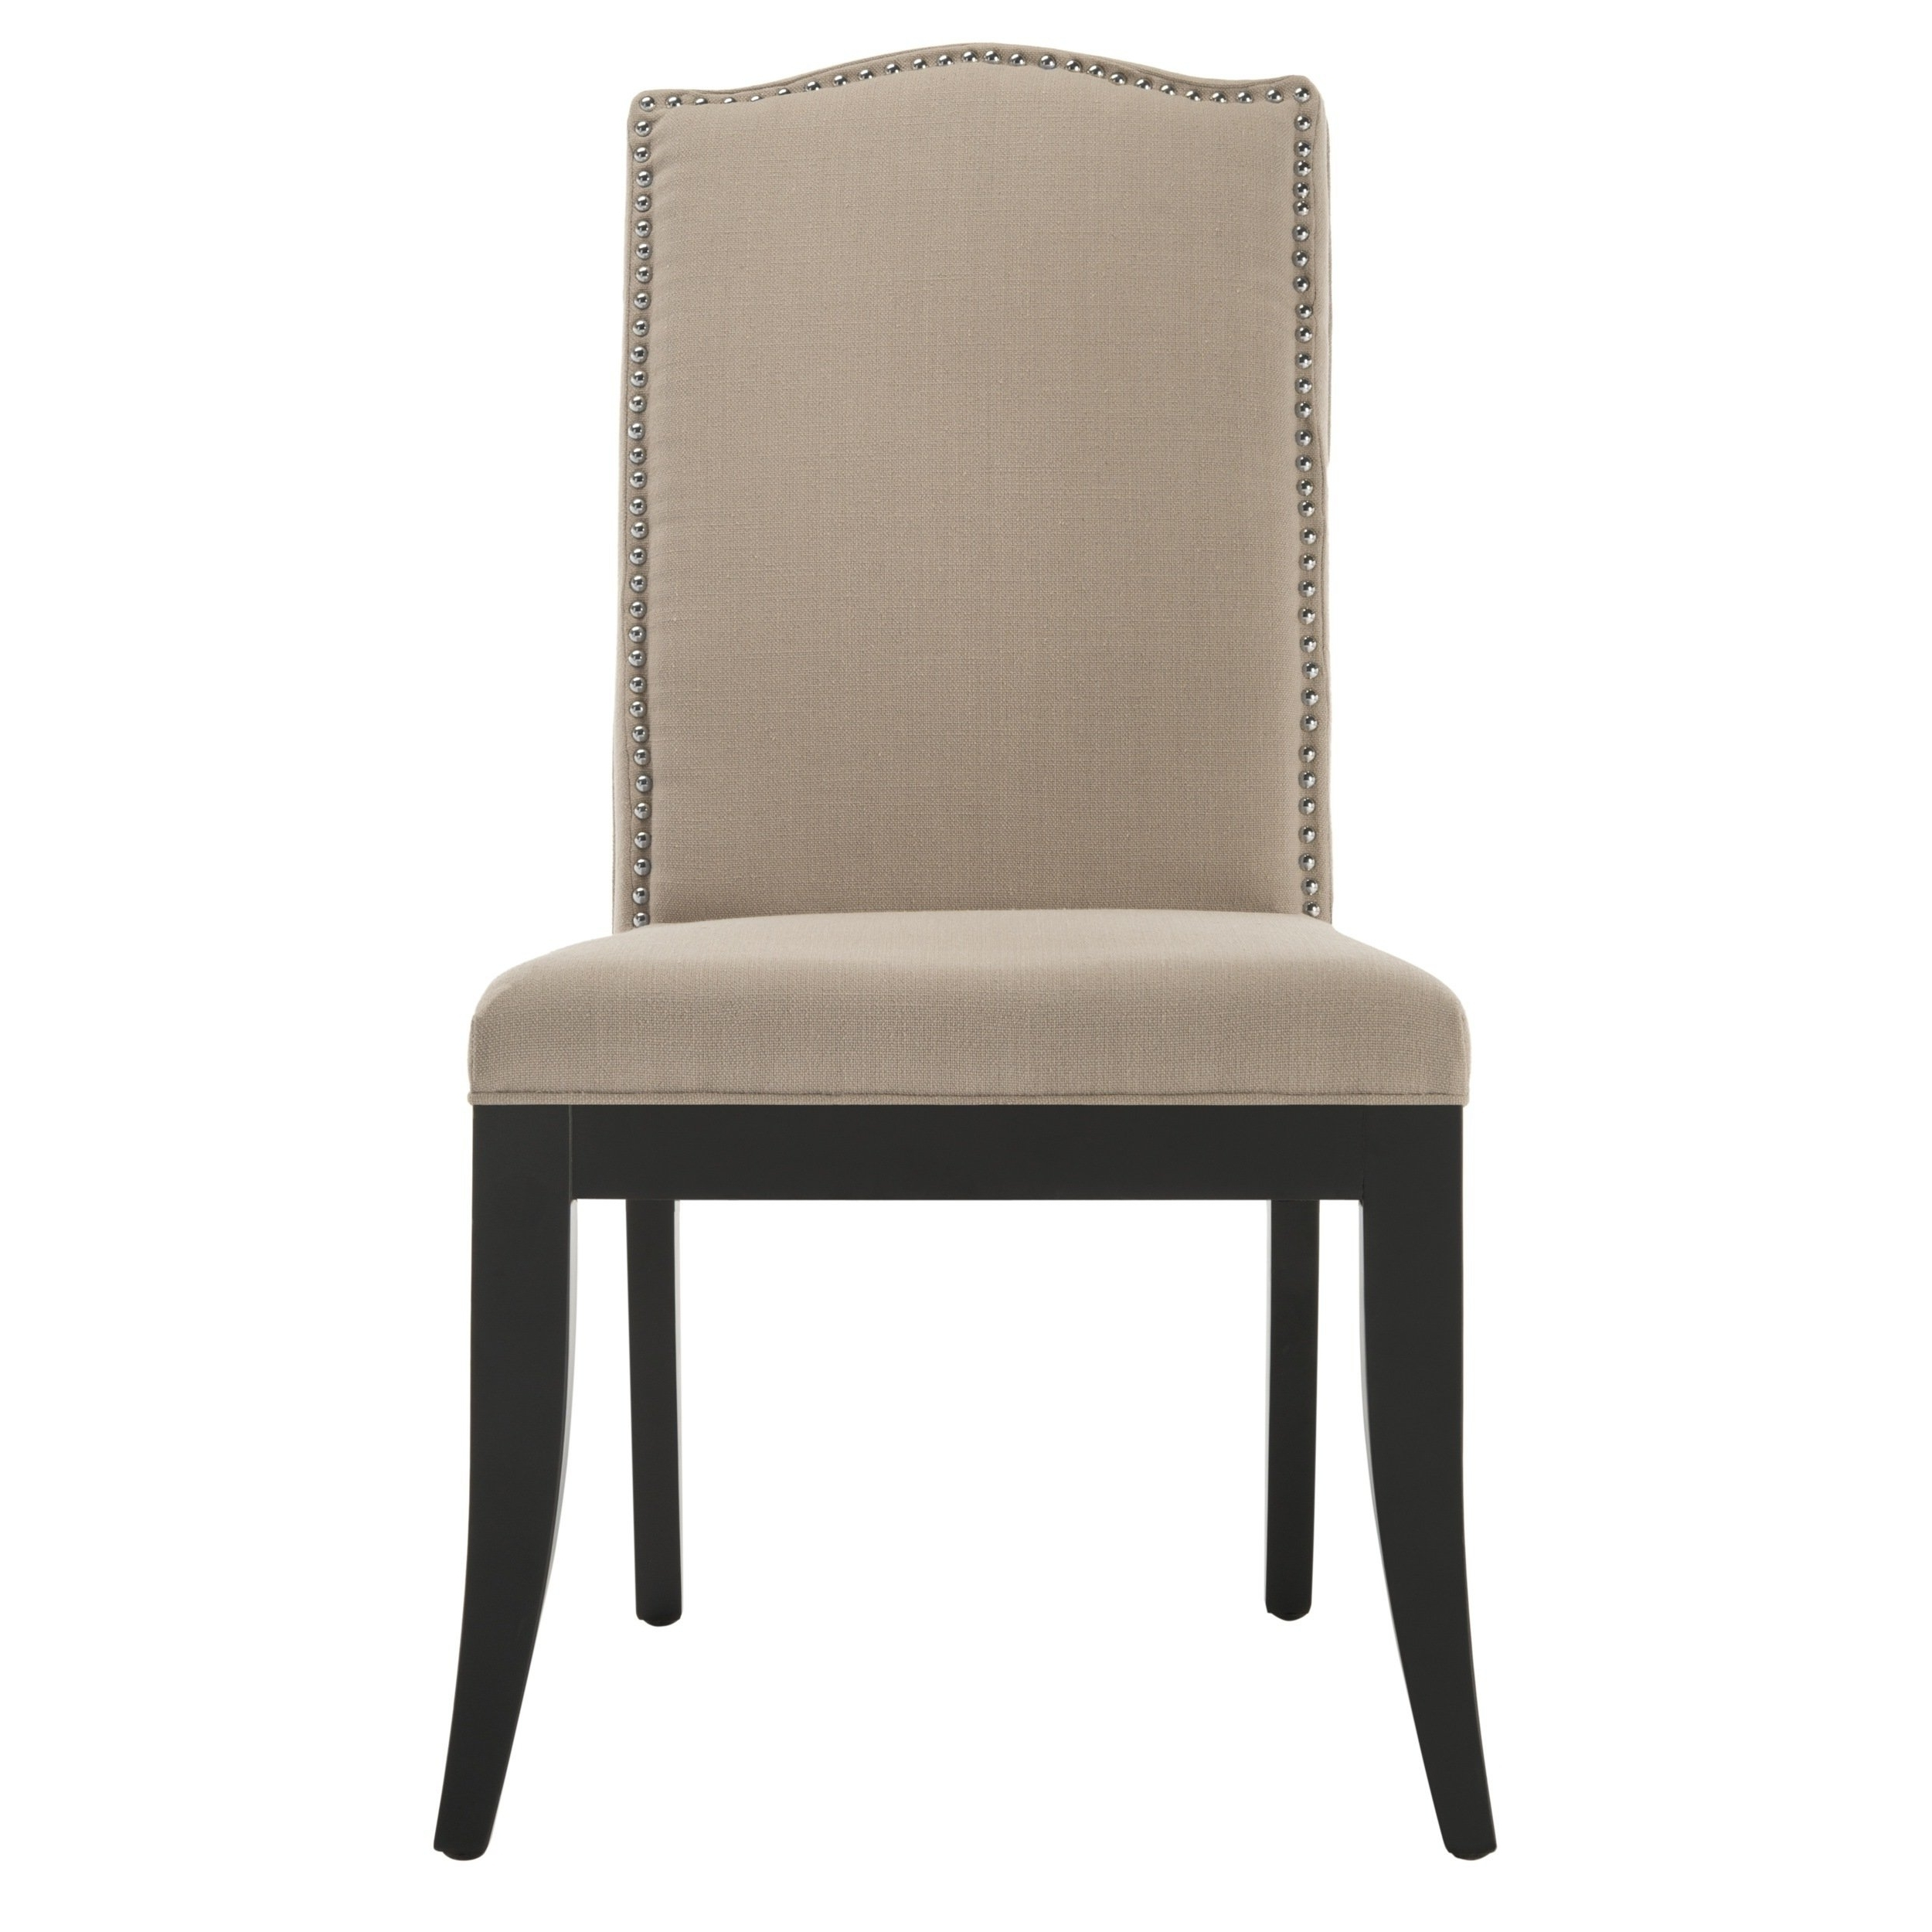 Safavieh En Vogue Dining Laurent Taupe Nailhead Dining Chairs (set Regarding Popular Laurent Upholstered Side Chairs (View 14 of 20)